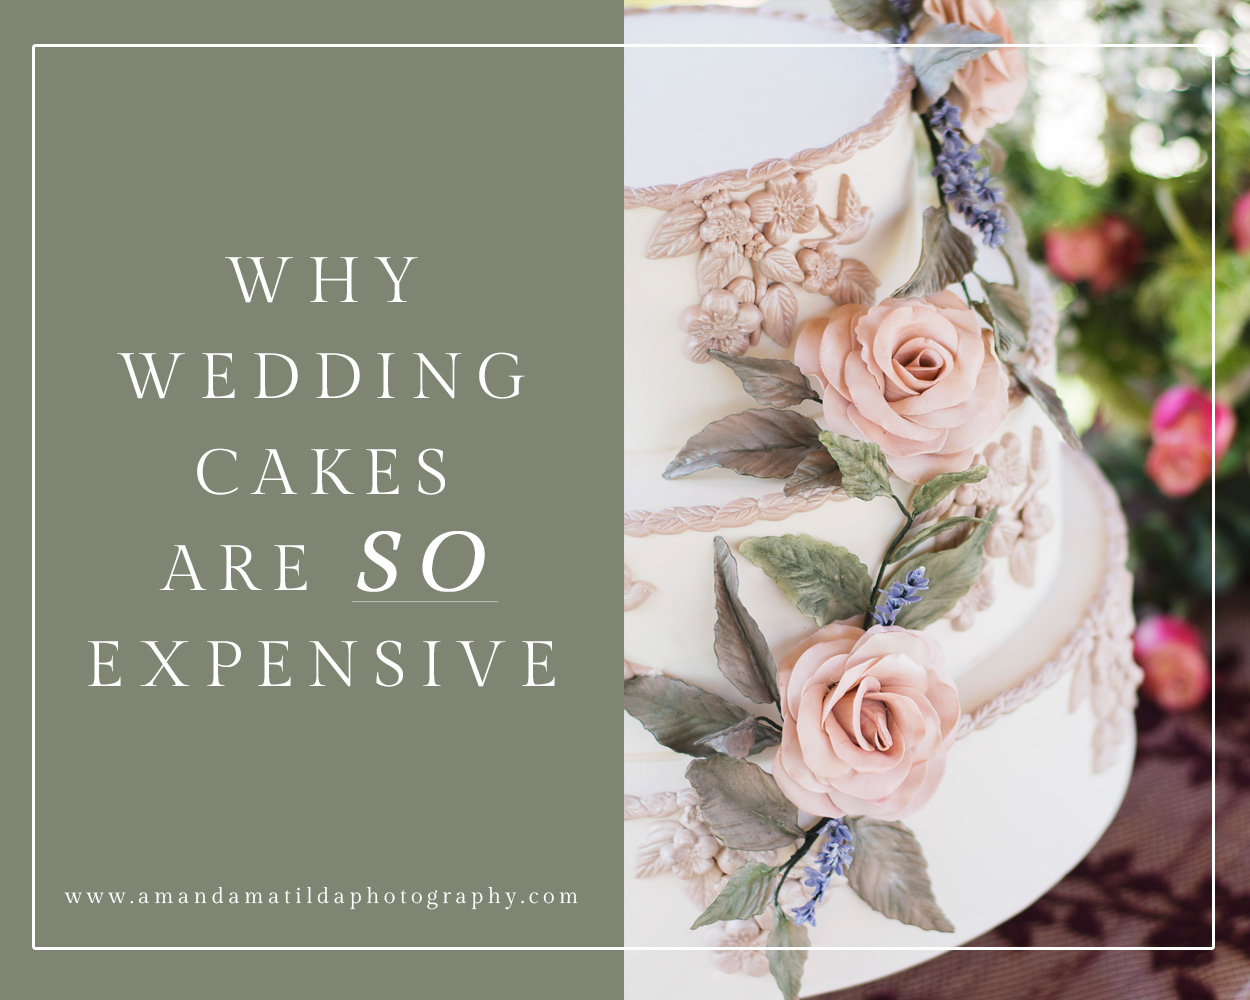 Why Are Wedding Cakes So Expensive